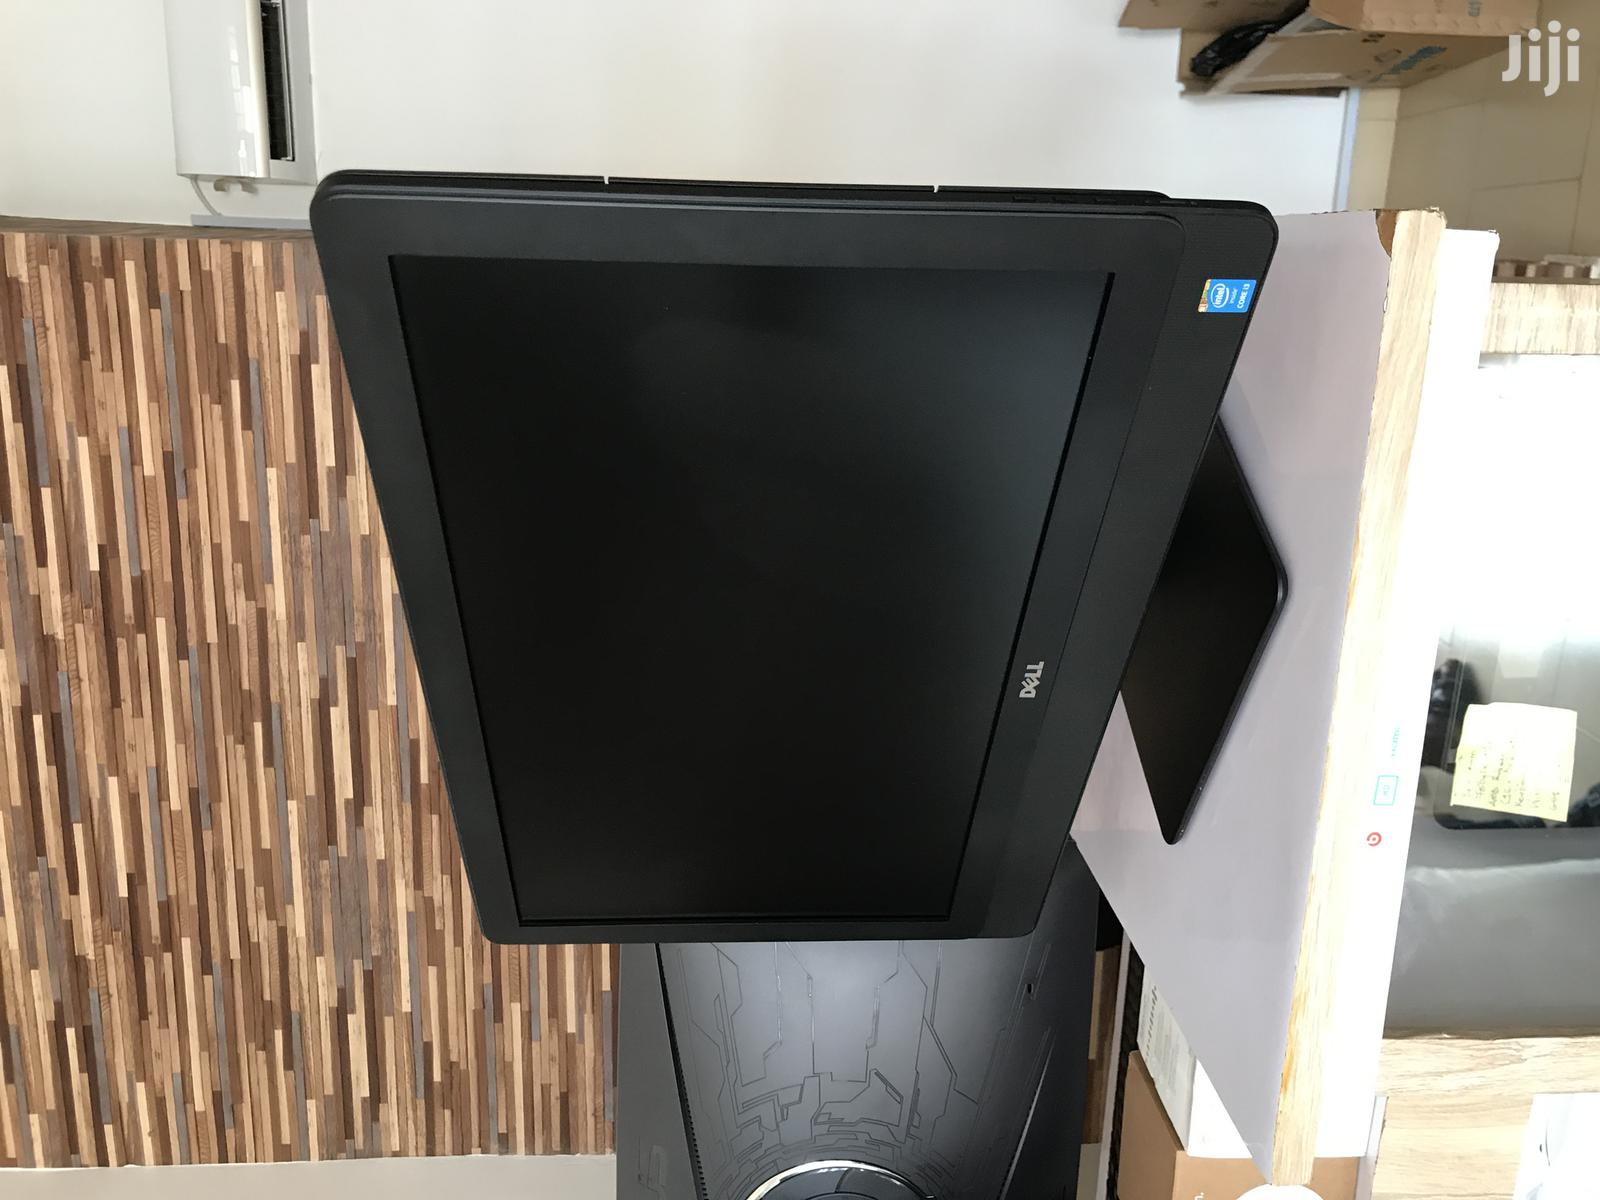 Desktop Computer Dell 4GB Intel Core i3 HDD 500GB | Laptops & Computers for sale in Achimota, Greater Accra, Ghana